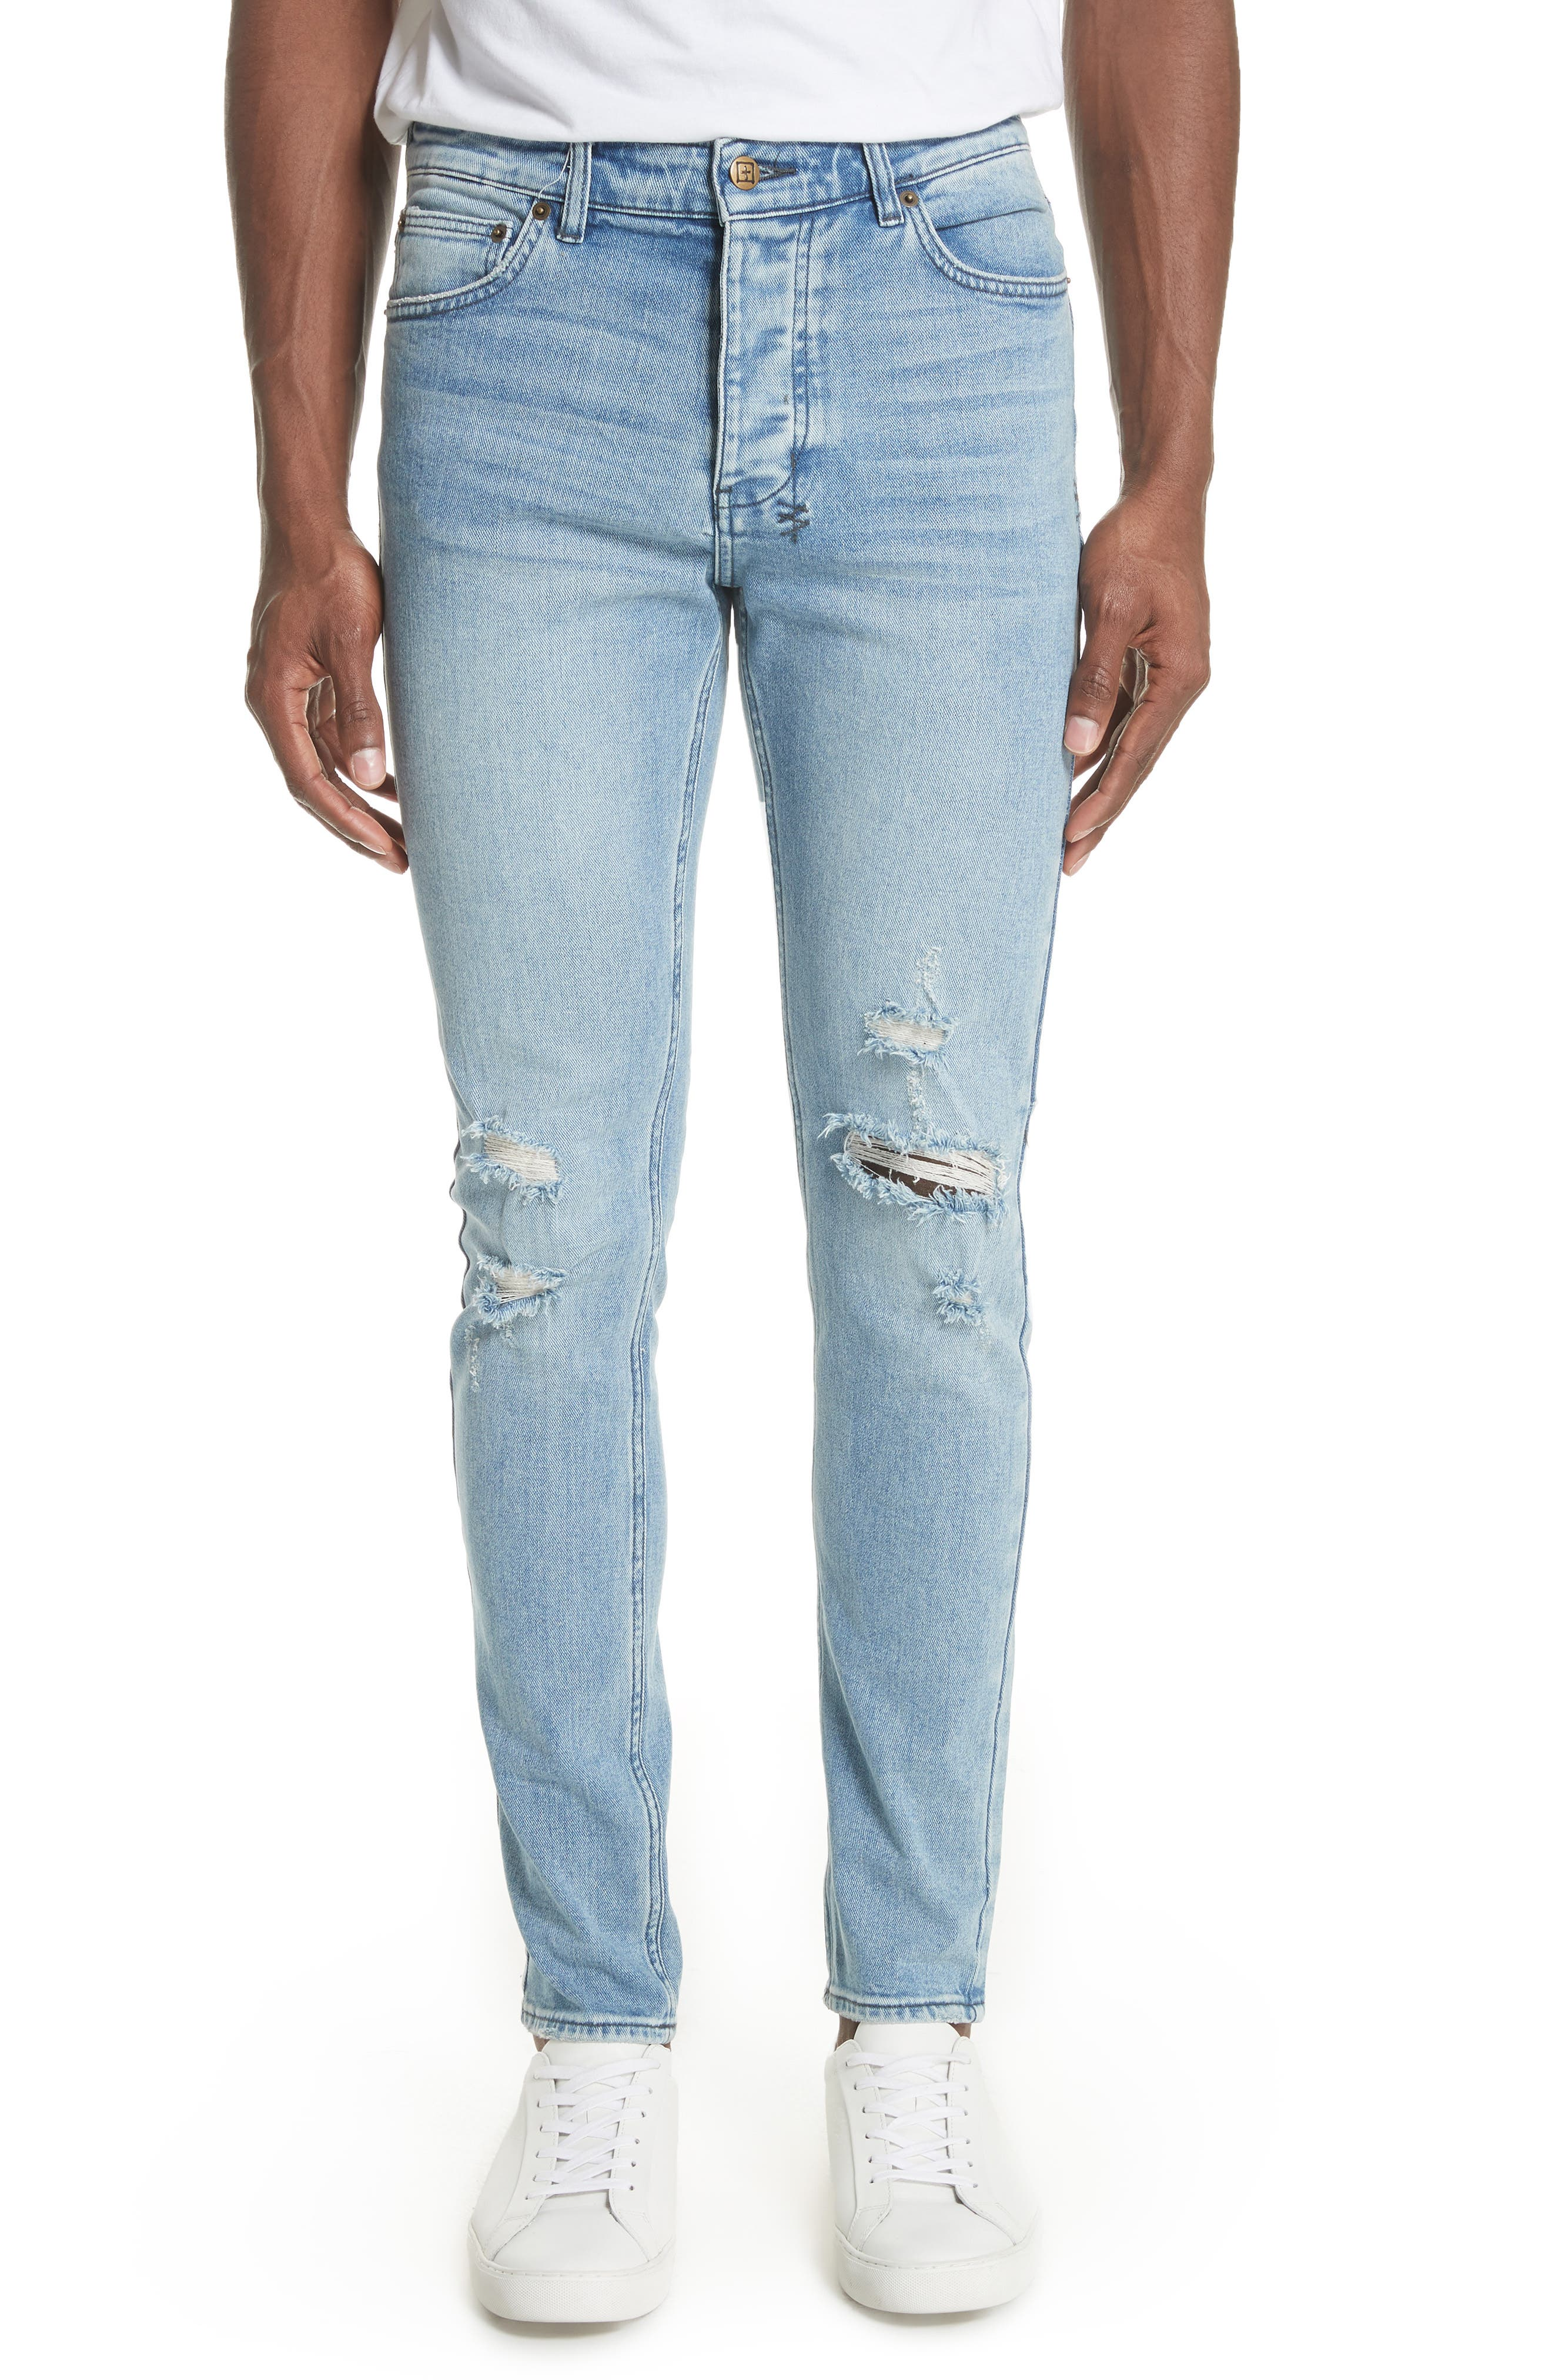 Chitch Philly Jeans,                         Main,                         color, BLUE